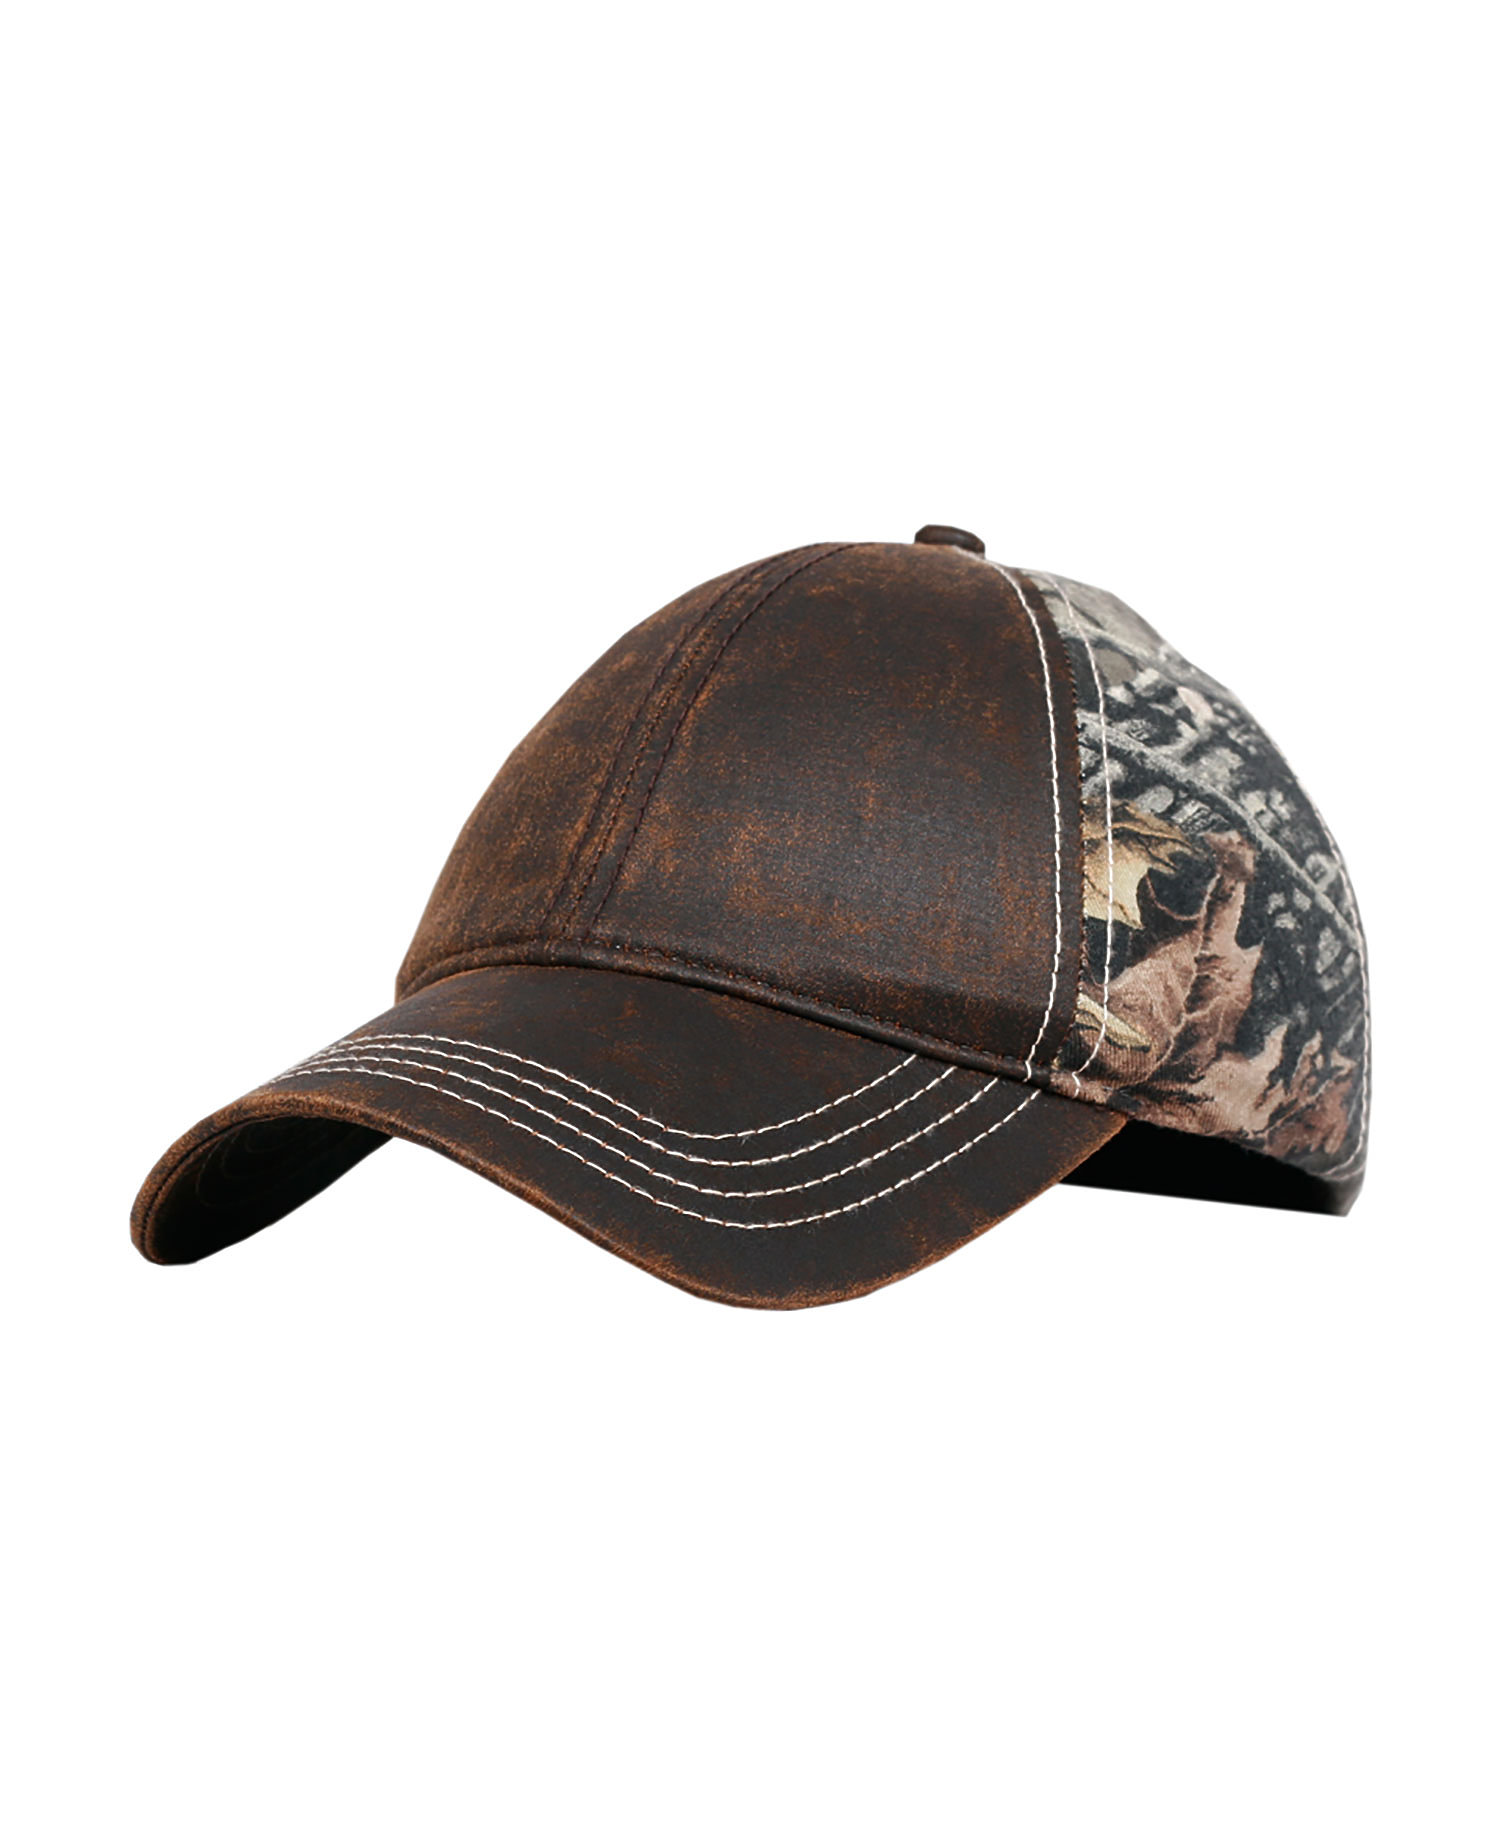 Fahrenheit F0393 - Washed Weathered Twill Superflauge Camo Cap